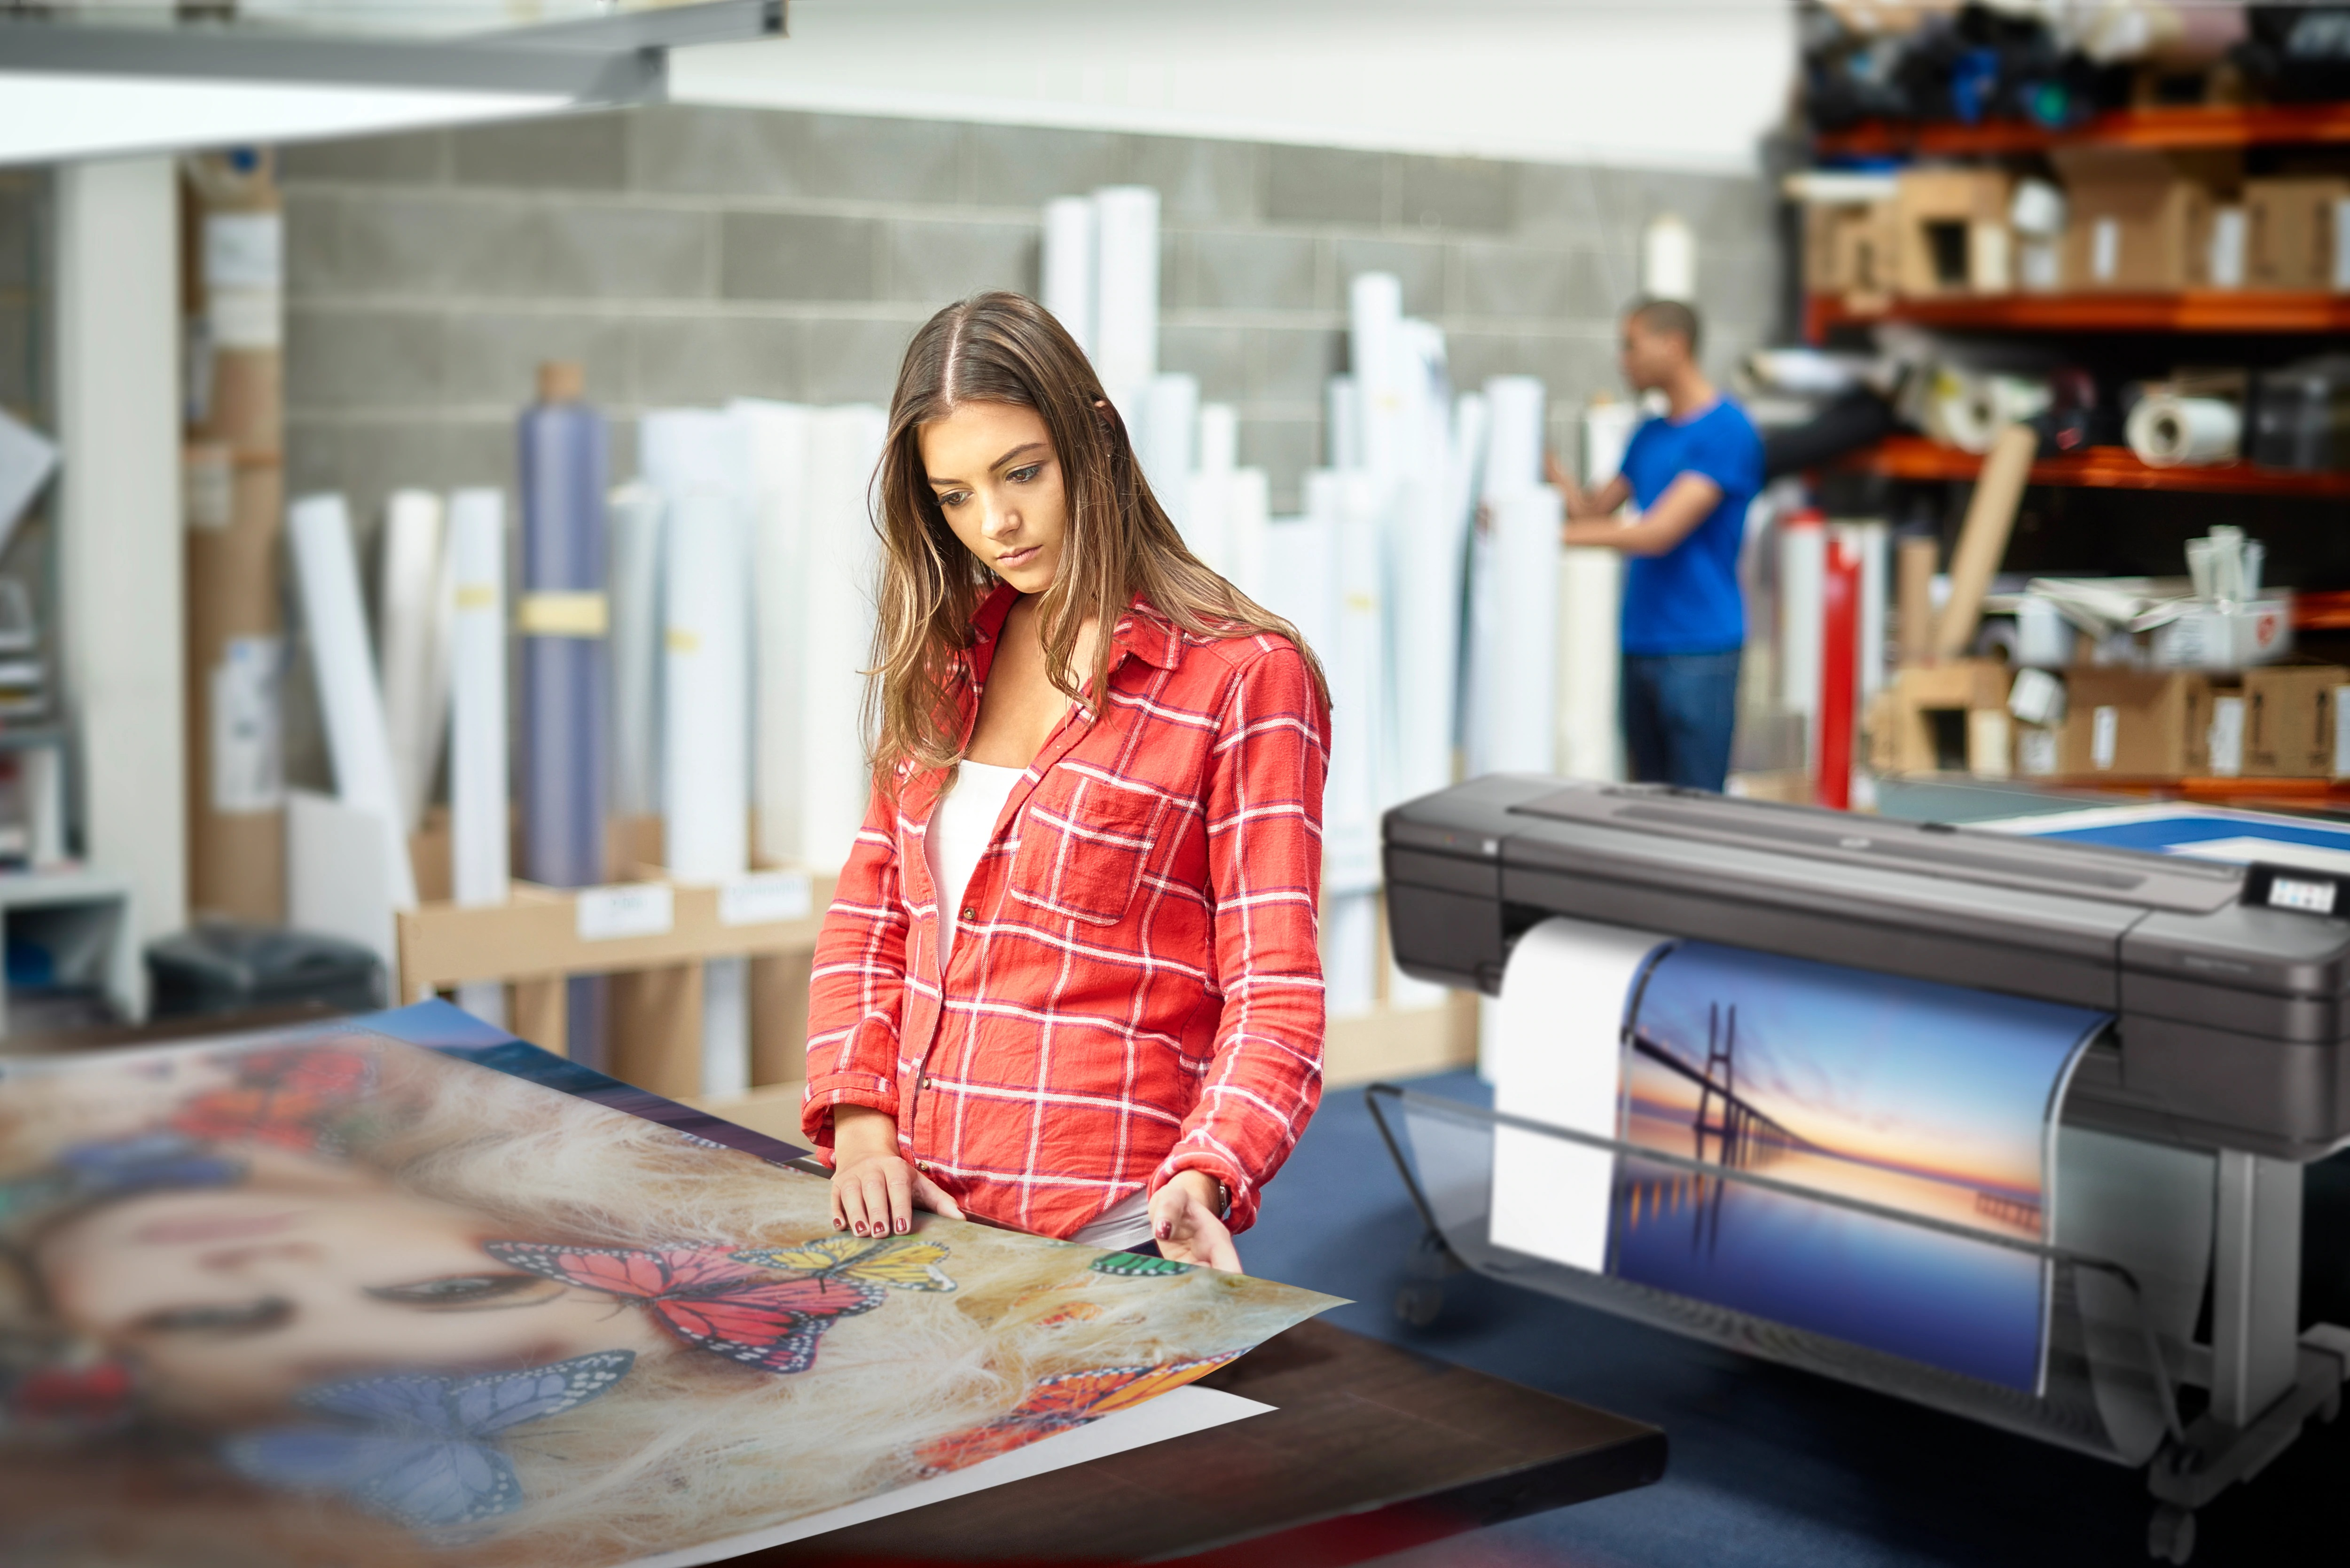 Plotter Hp 2019 a rate senza interessi